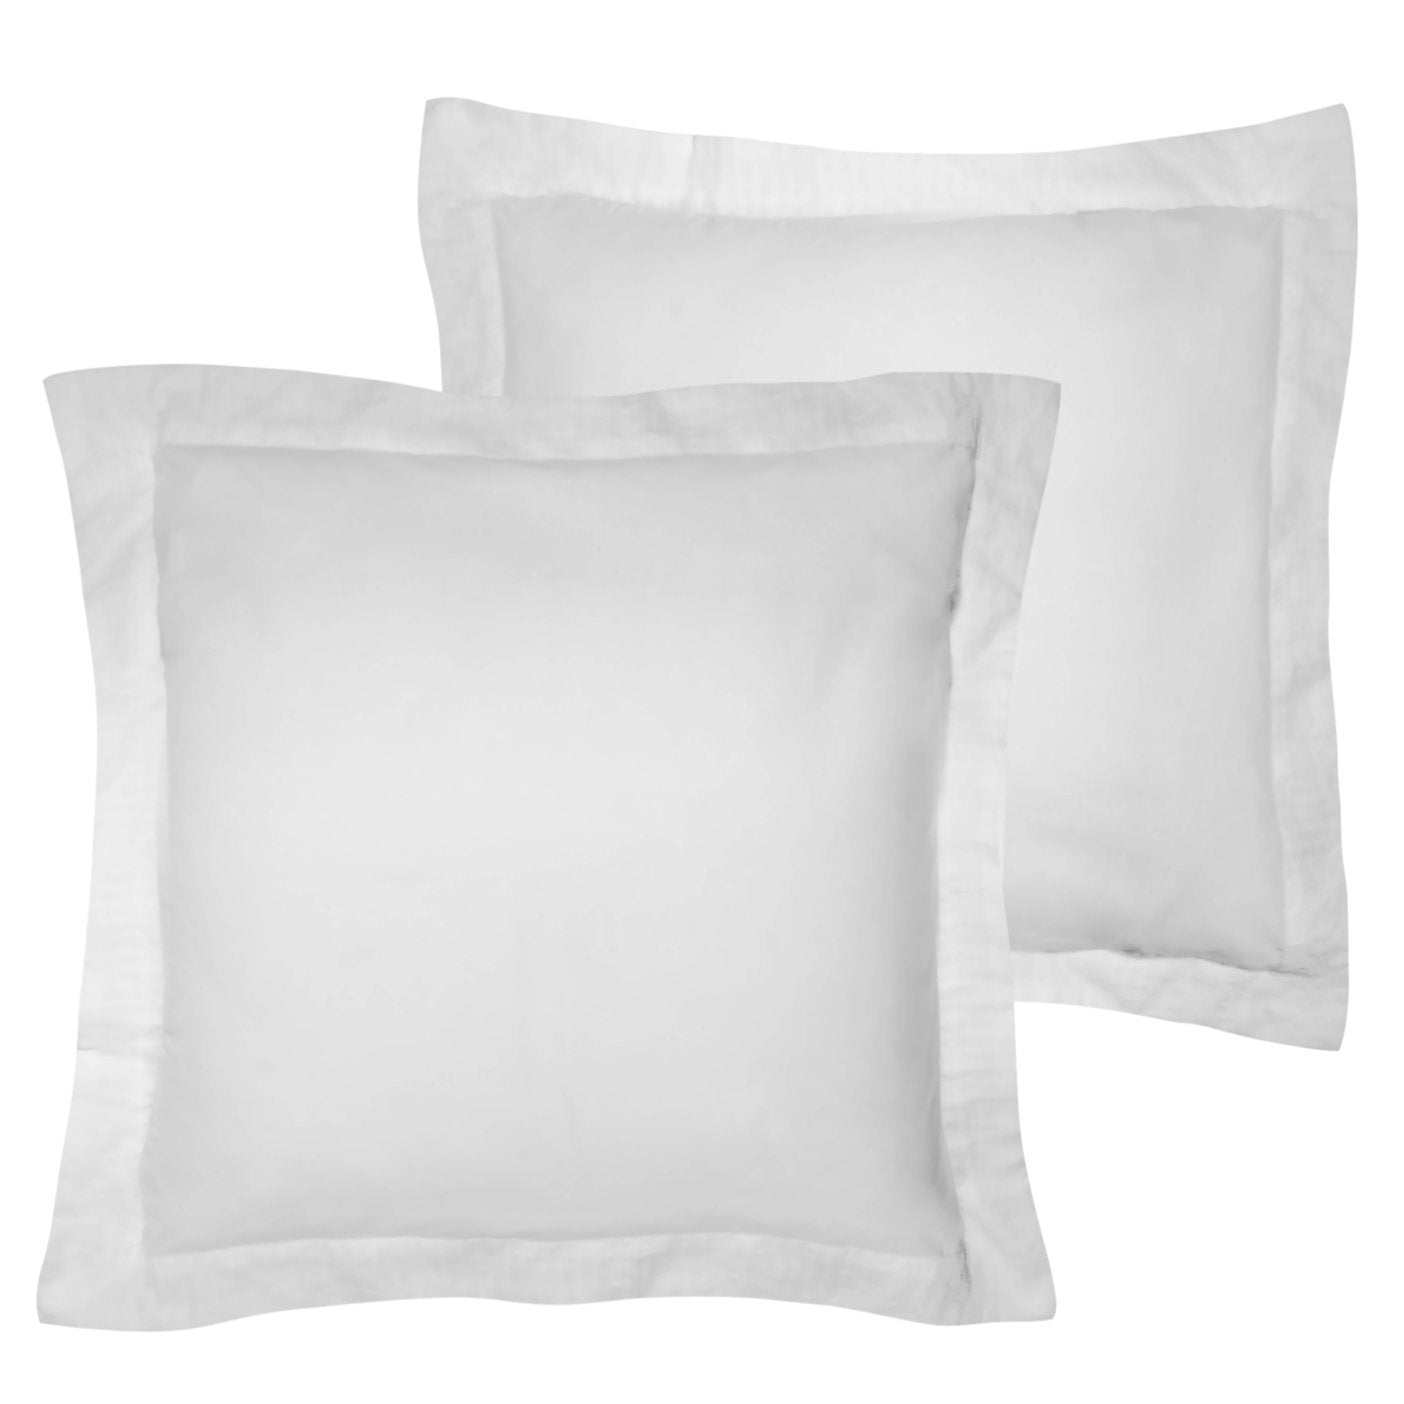 American Pillowcase Euro Shams 26x26 Set of 2 Pillow Covers - Luxury 100% Egyptian Cotton (2 Pack, European 26 x 26, White)